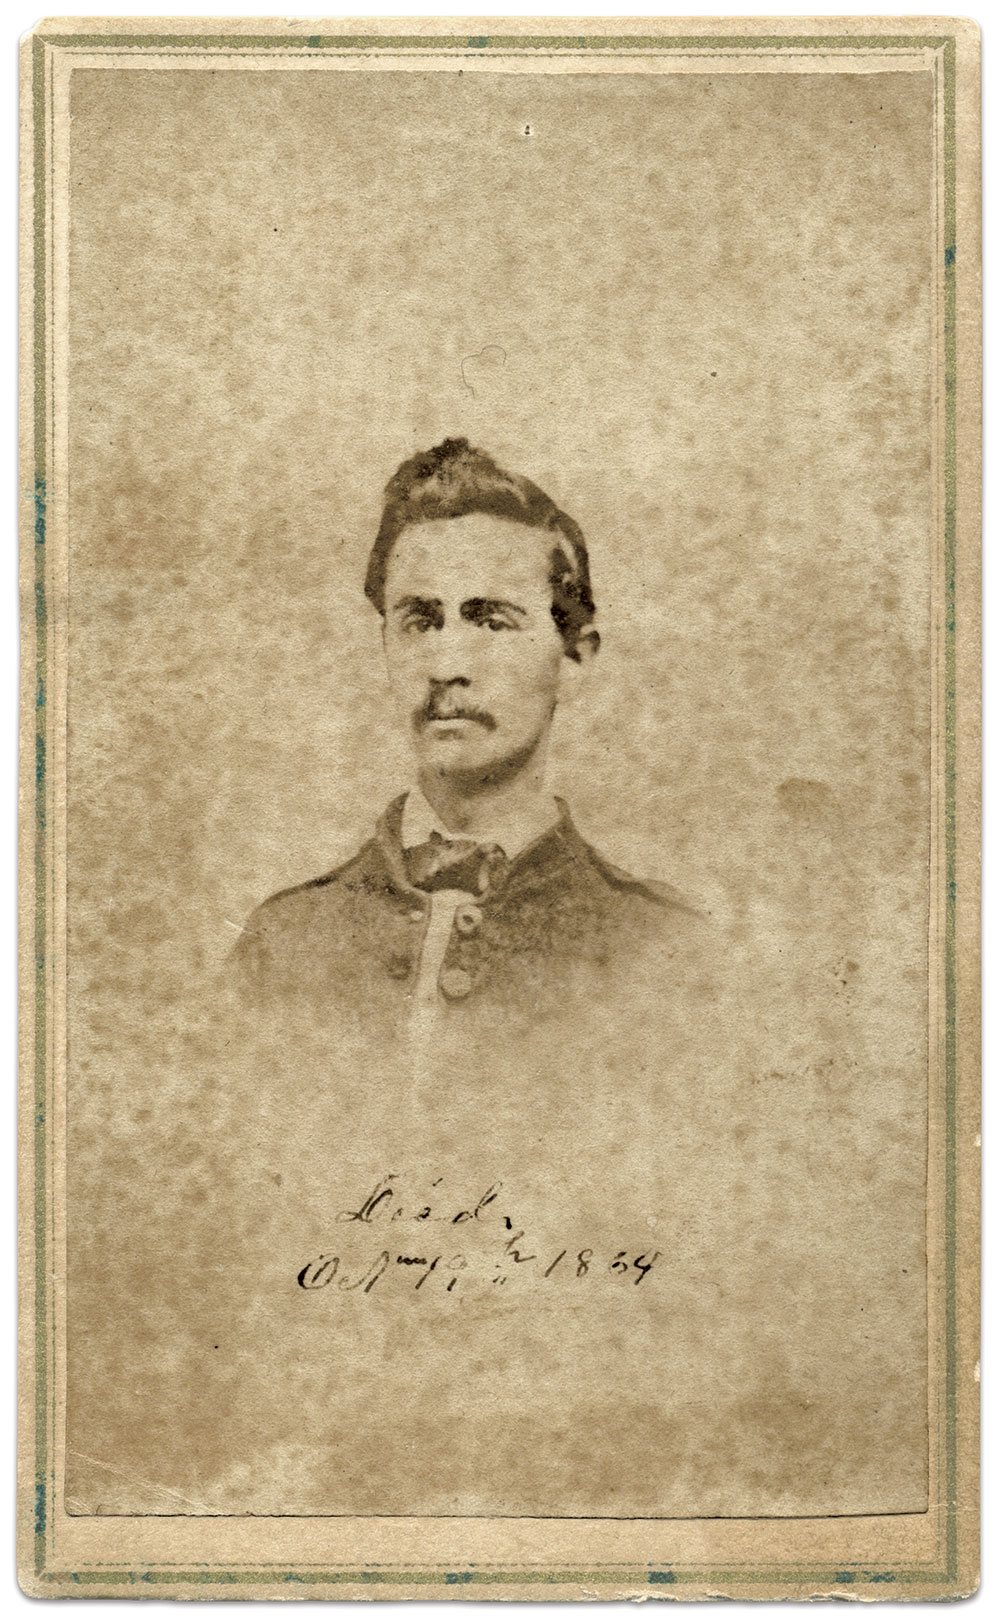 Carte de visite by A.B. Avery of Tuskegee, Ala. Ron Loveall Collection.